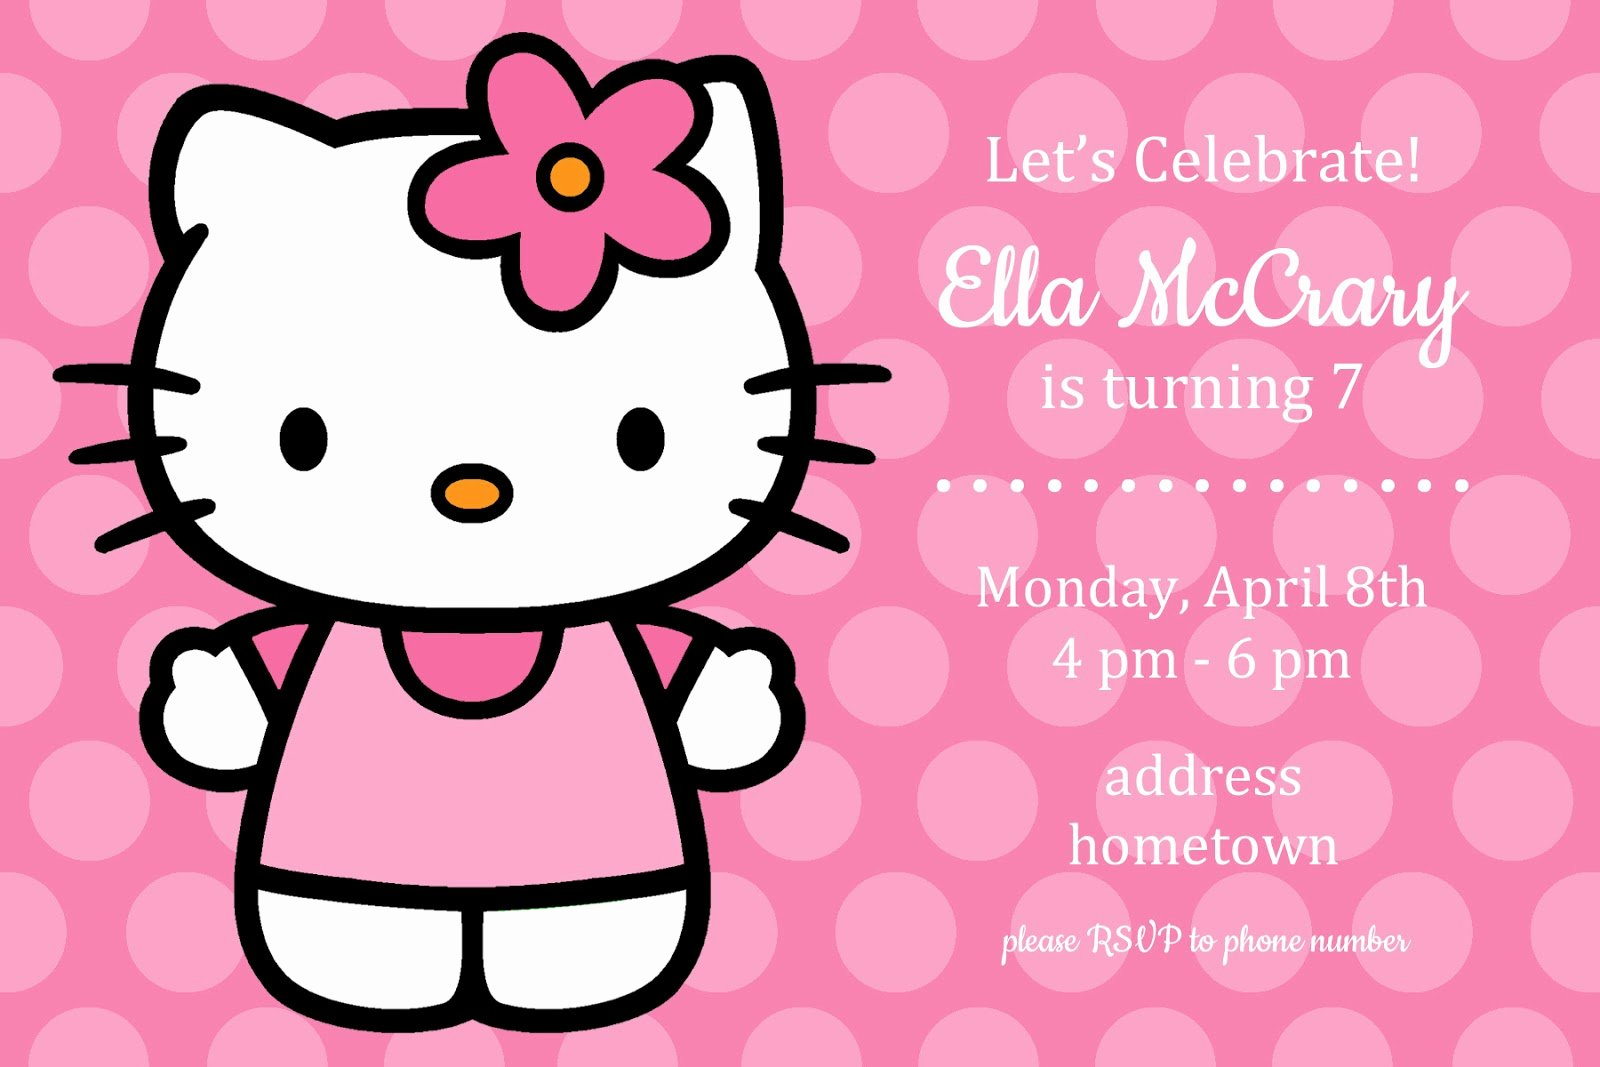 Hello Kitty Party Invite Awesome All Things Simple Simple Celebrations Hello Kitty Party